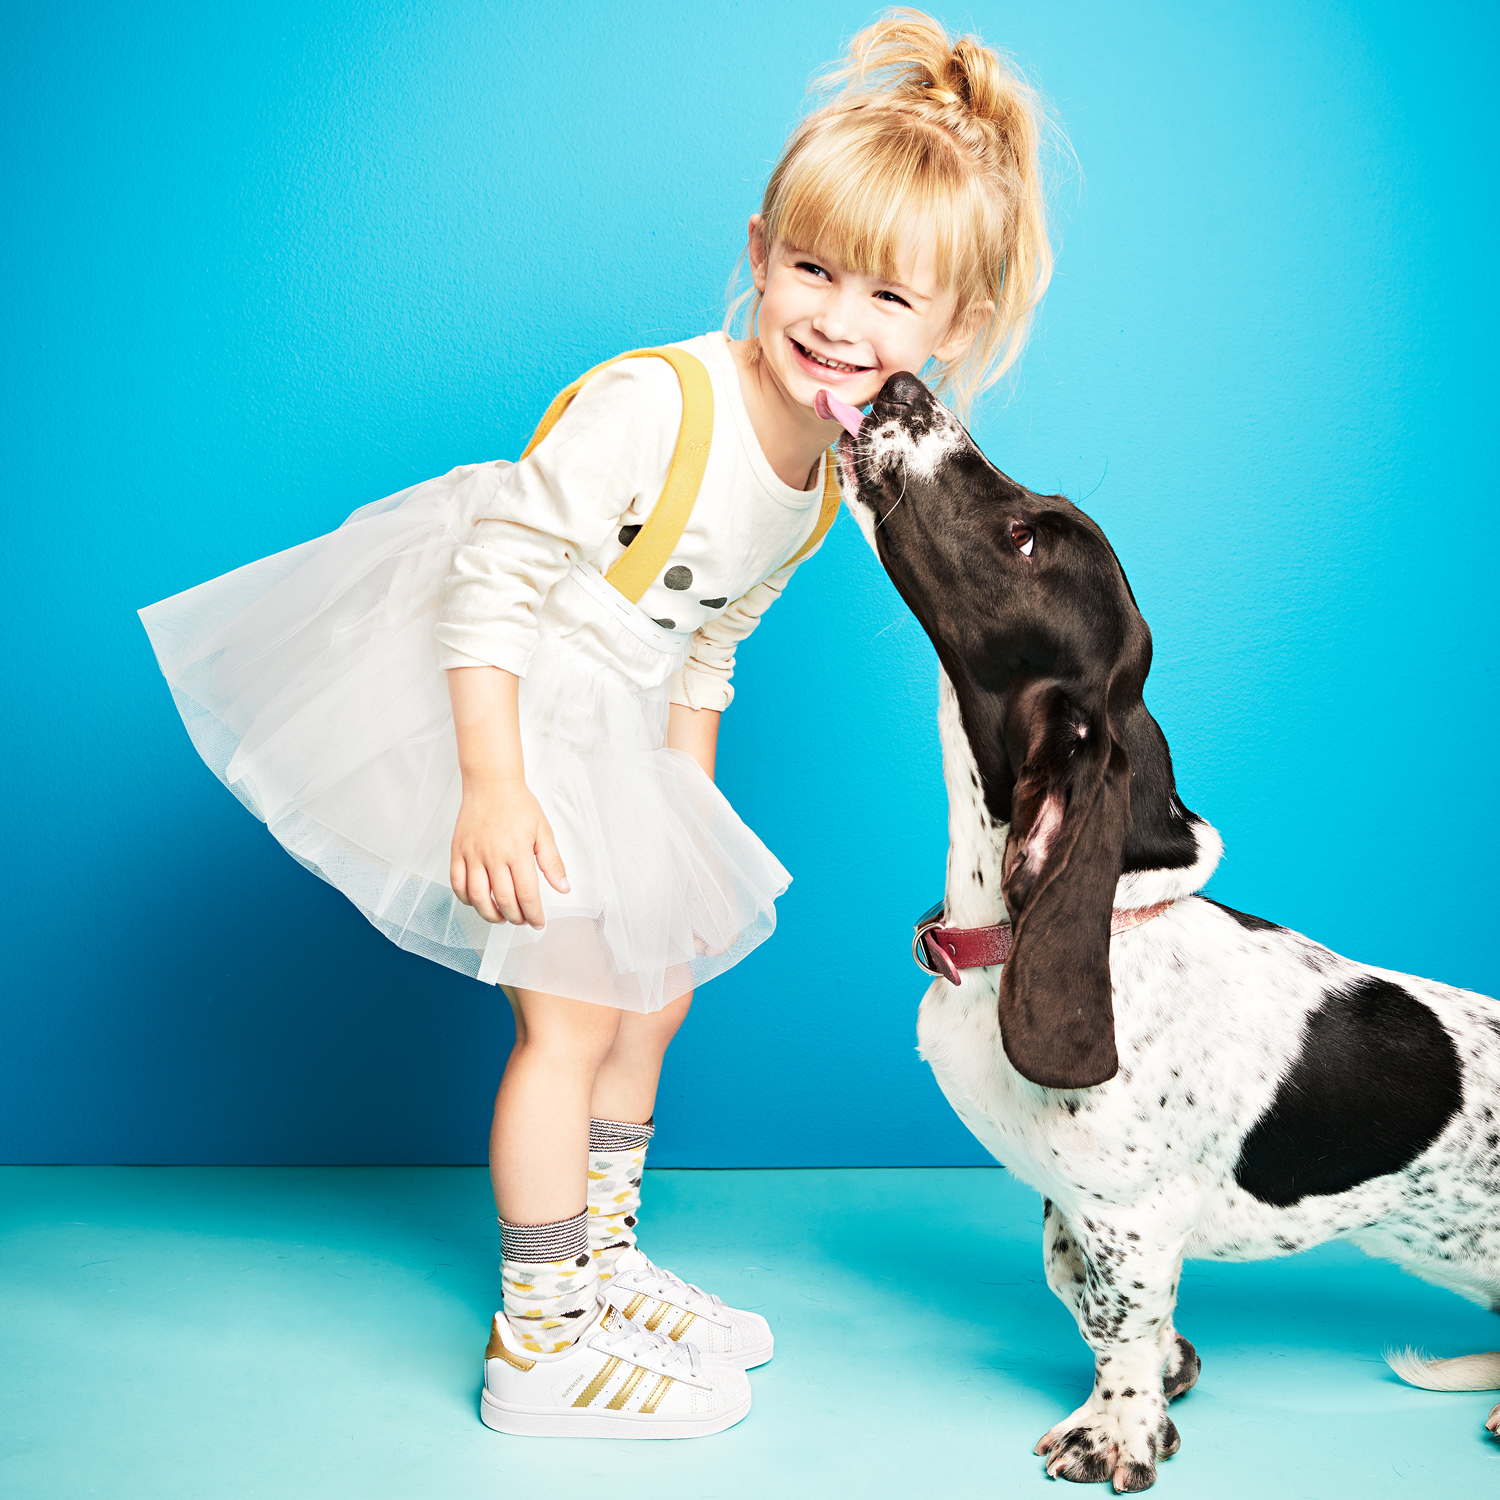 girl wearing tutu getting licked by her basset hound